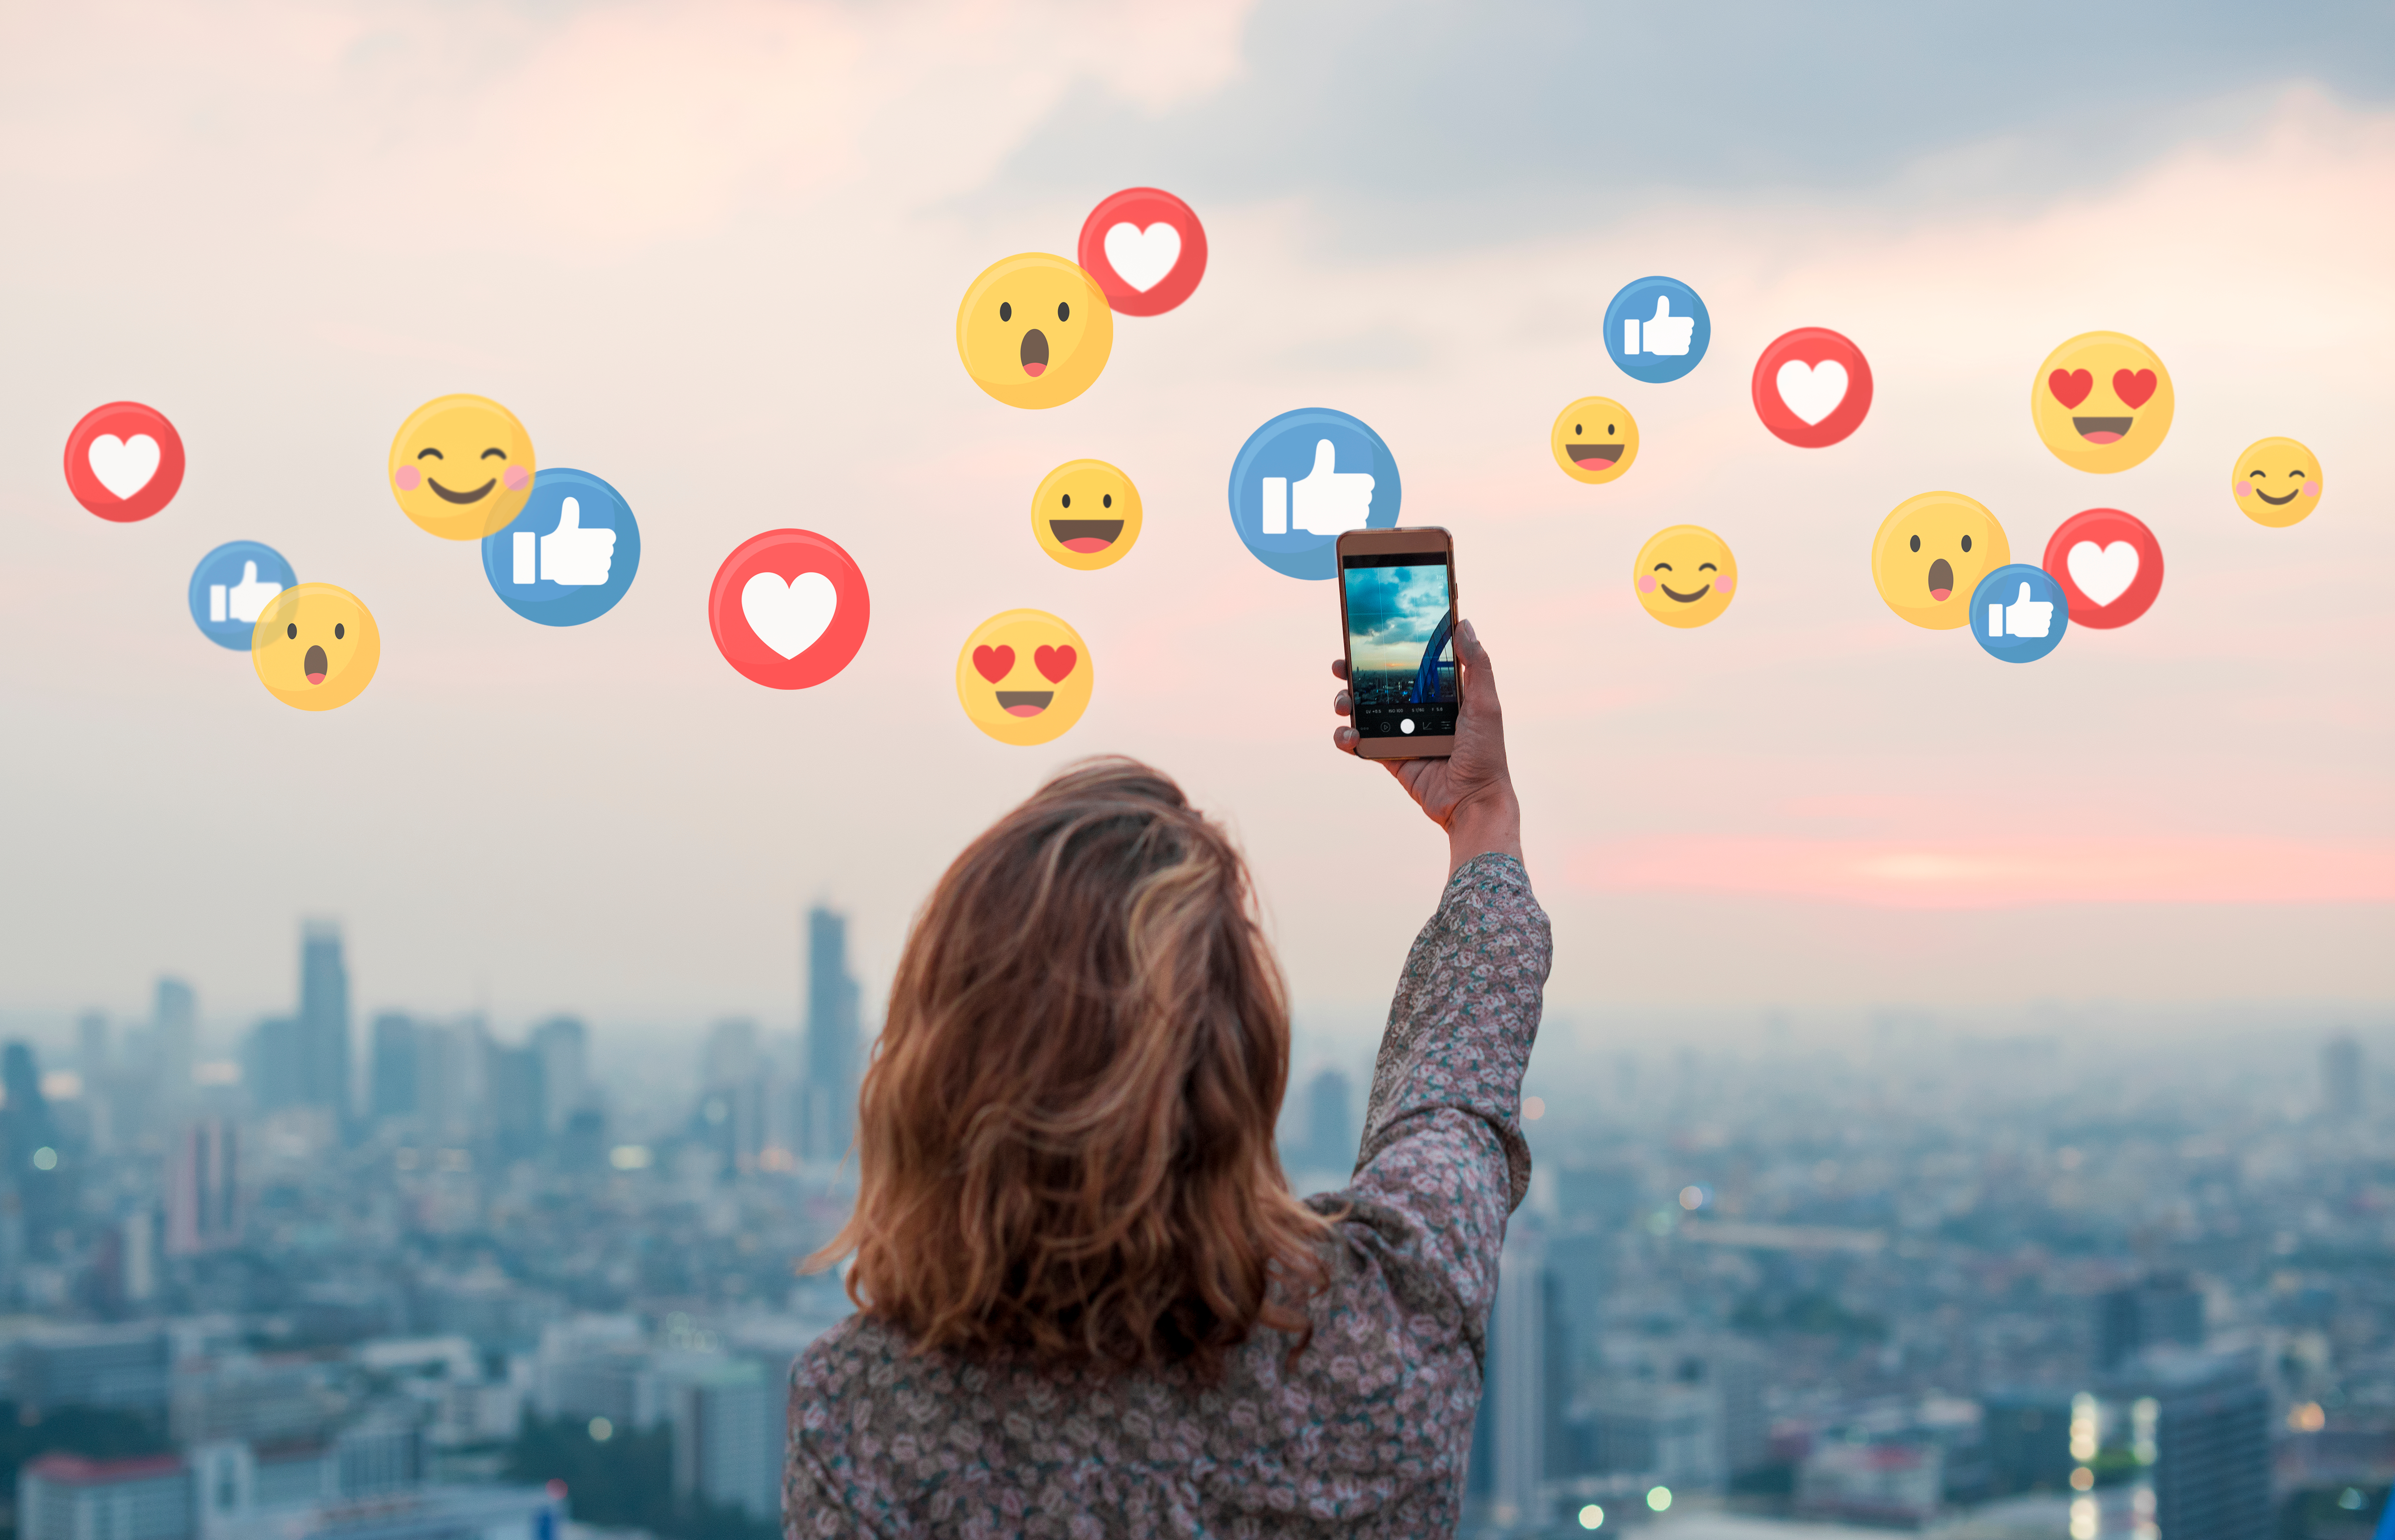 Develop and nurture your online presence with social media